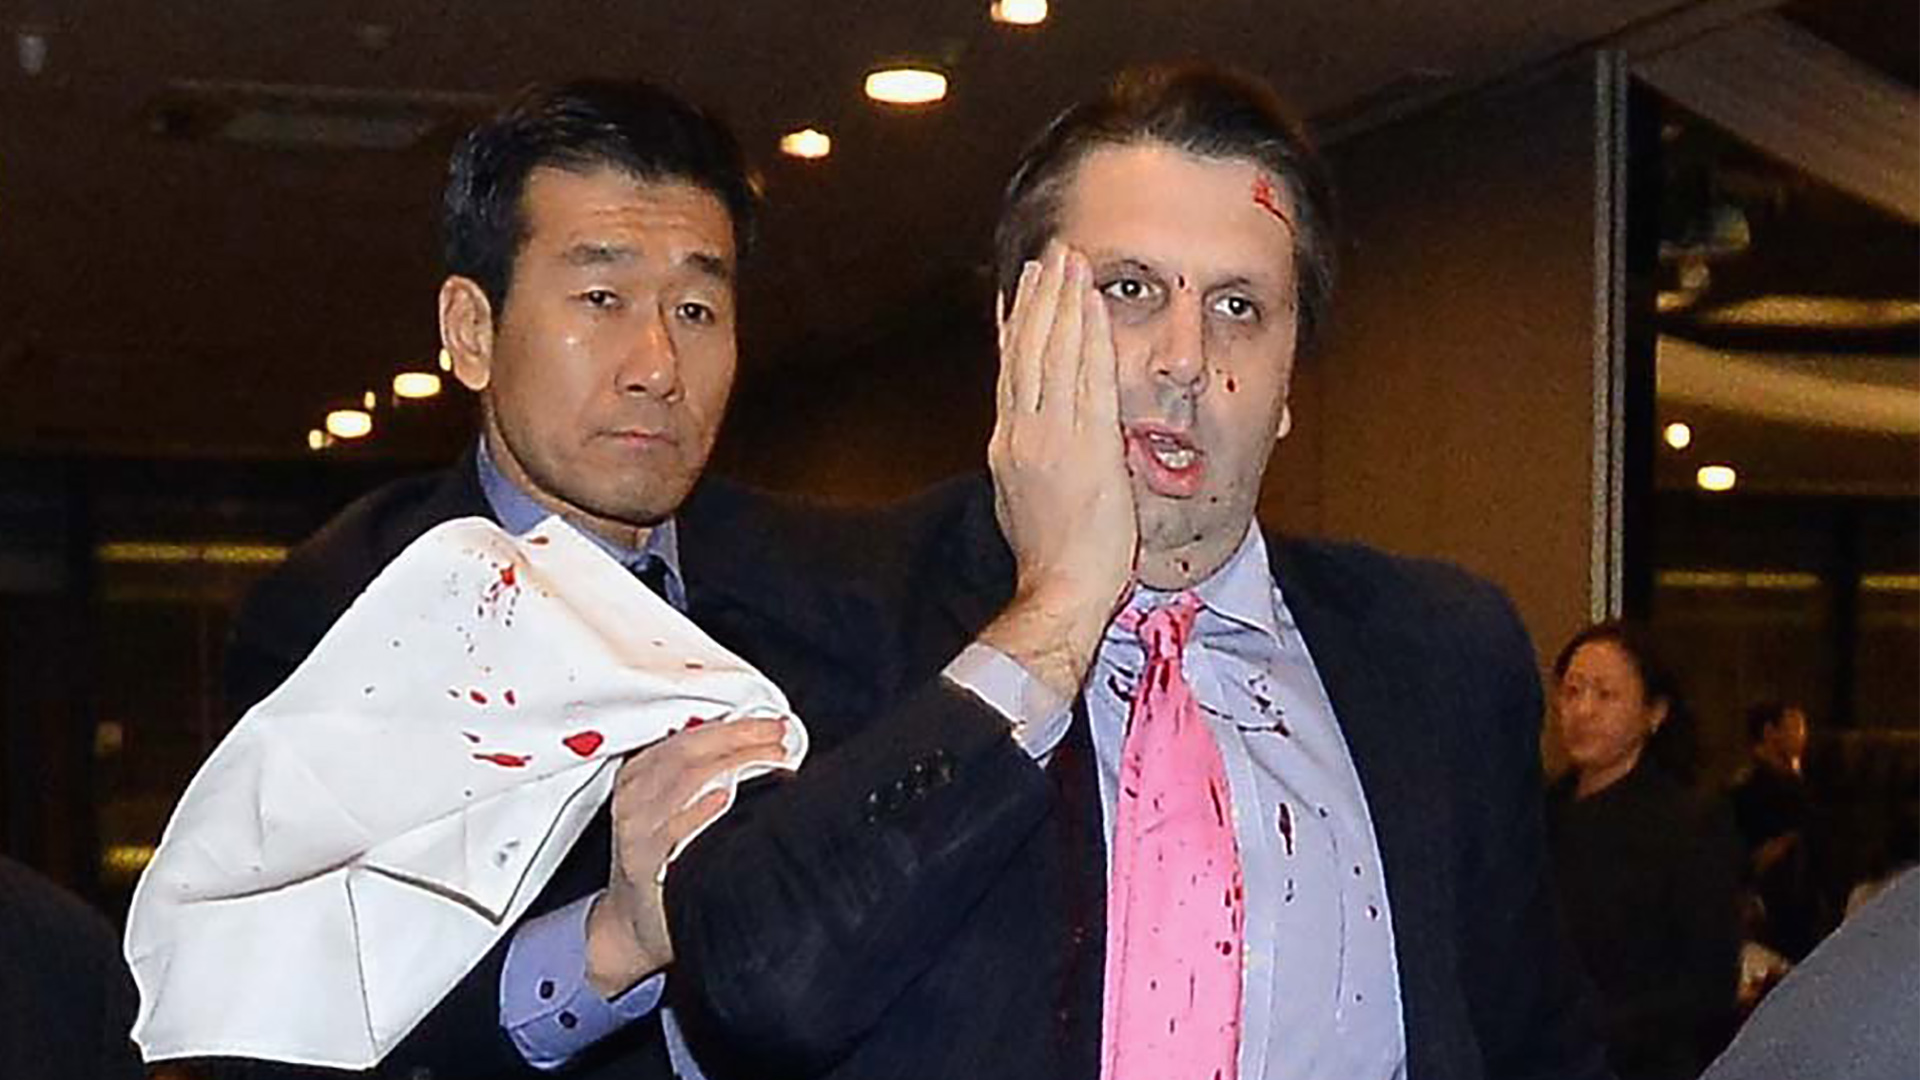 Ambassador Mark Lippert Attack: Suspect Charged With Attempted Murder